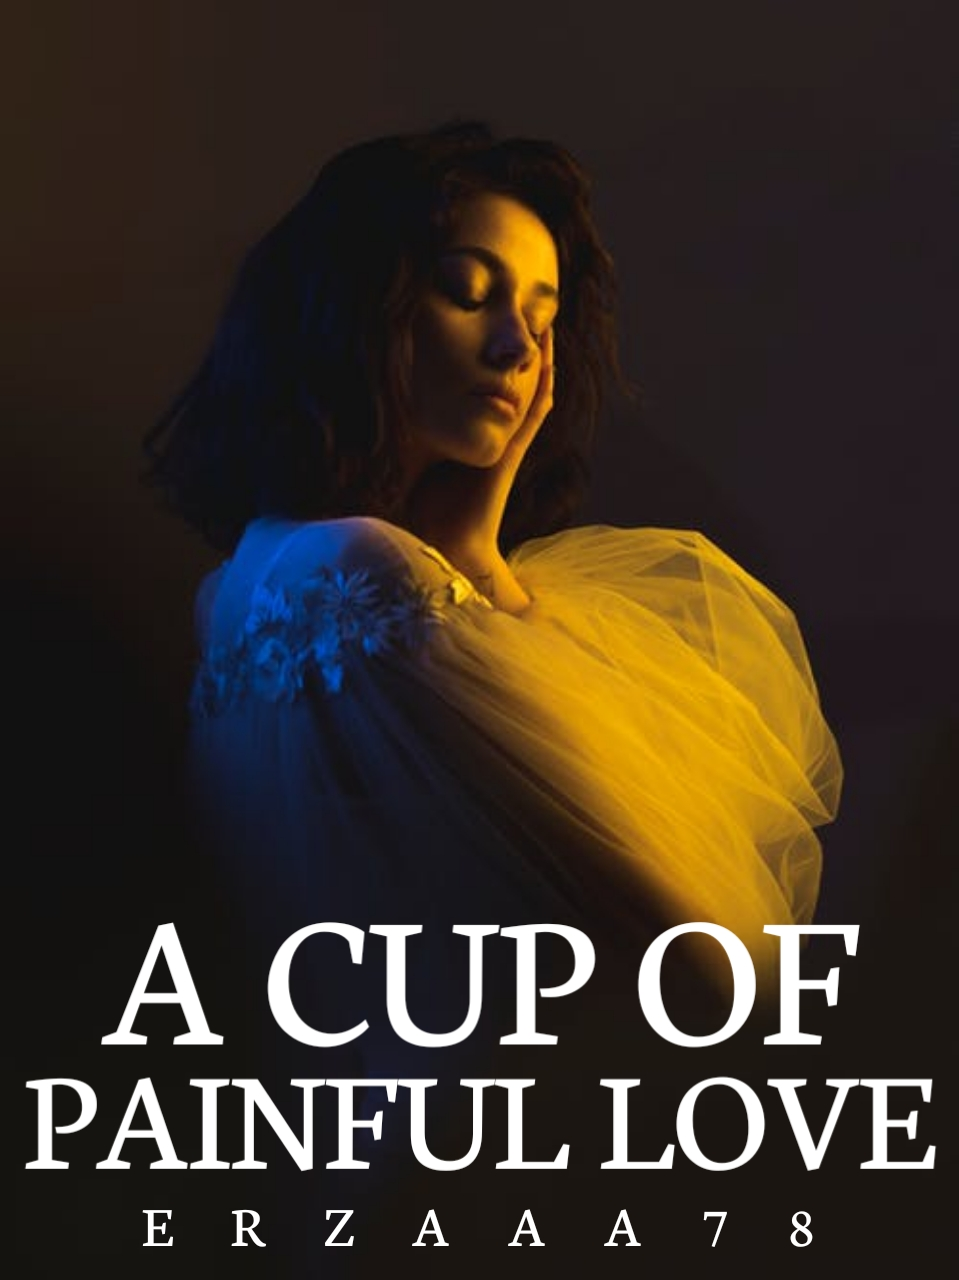 A Cup Of Painful Love